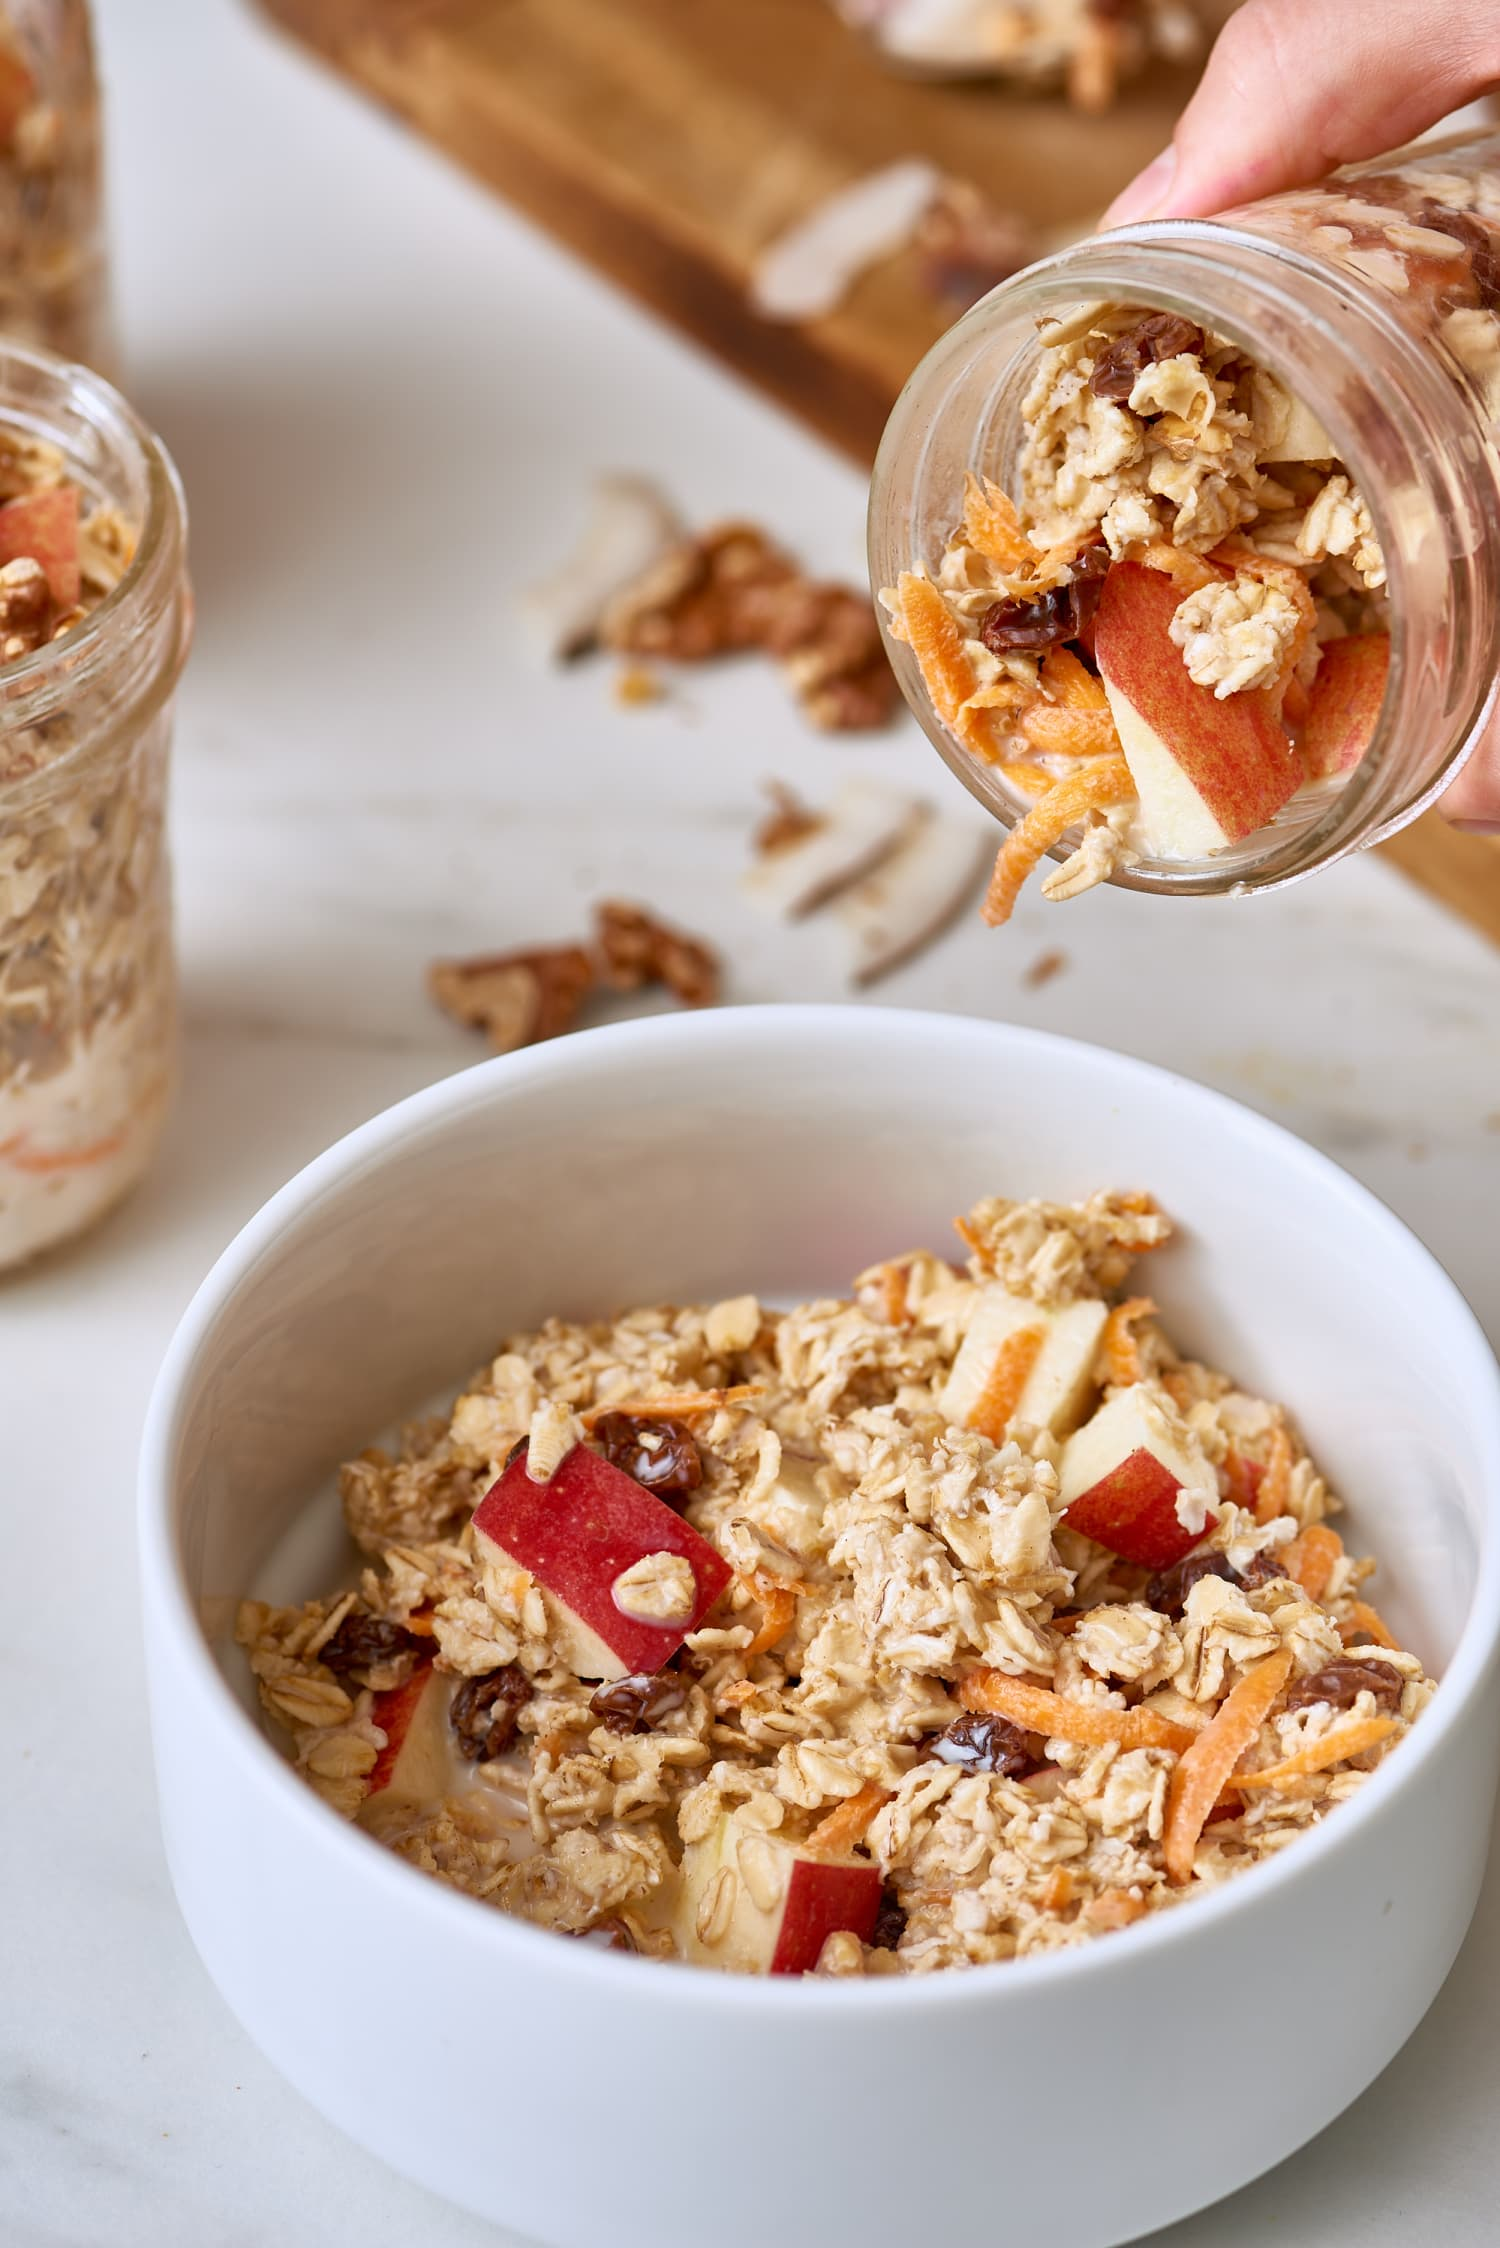 Mistakes to Avoid When Making Overnight Oats | Kitchn